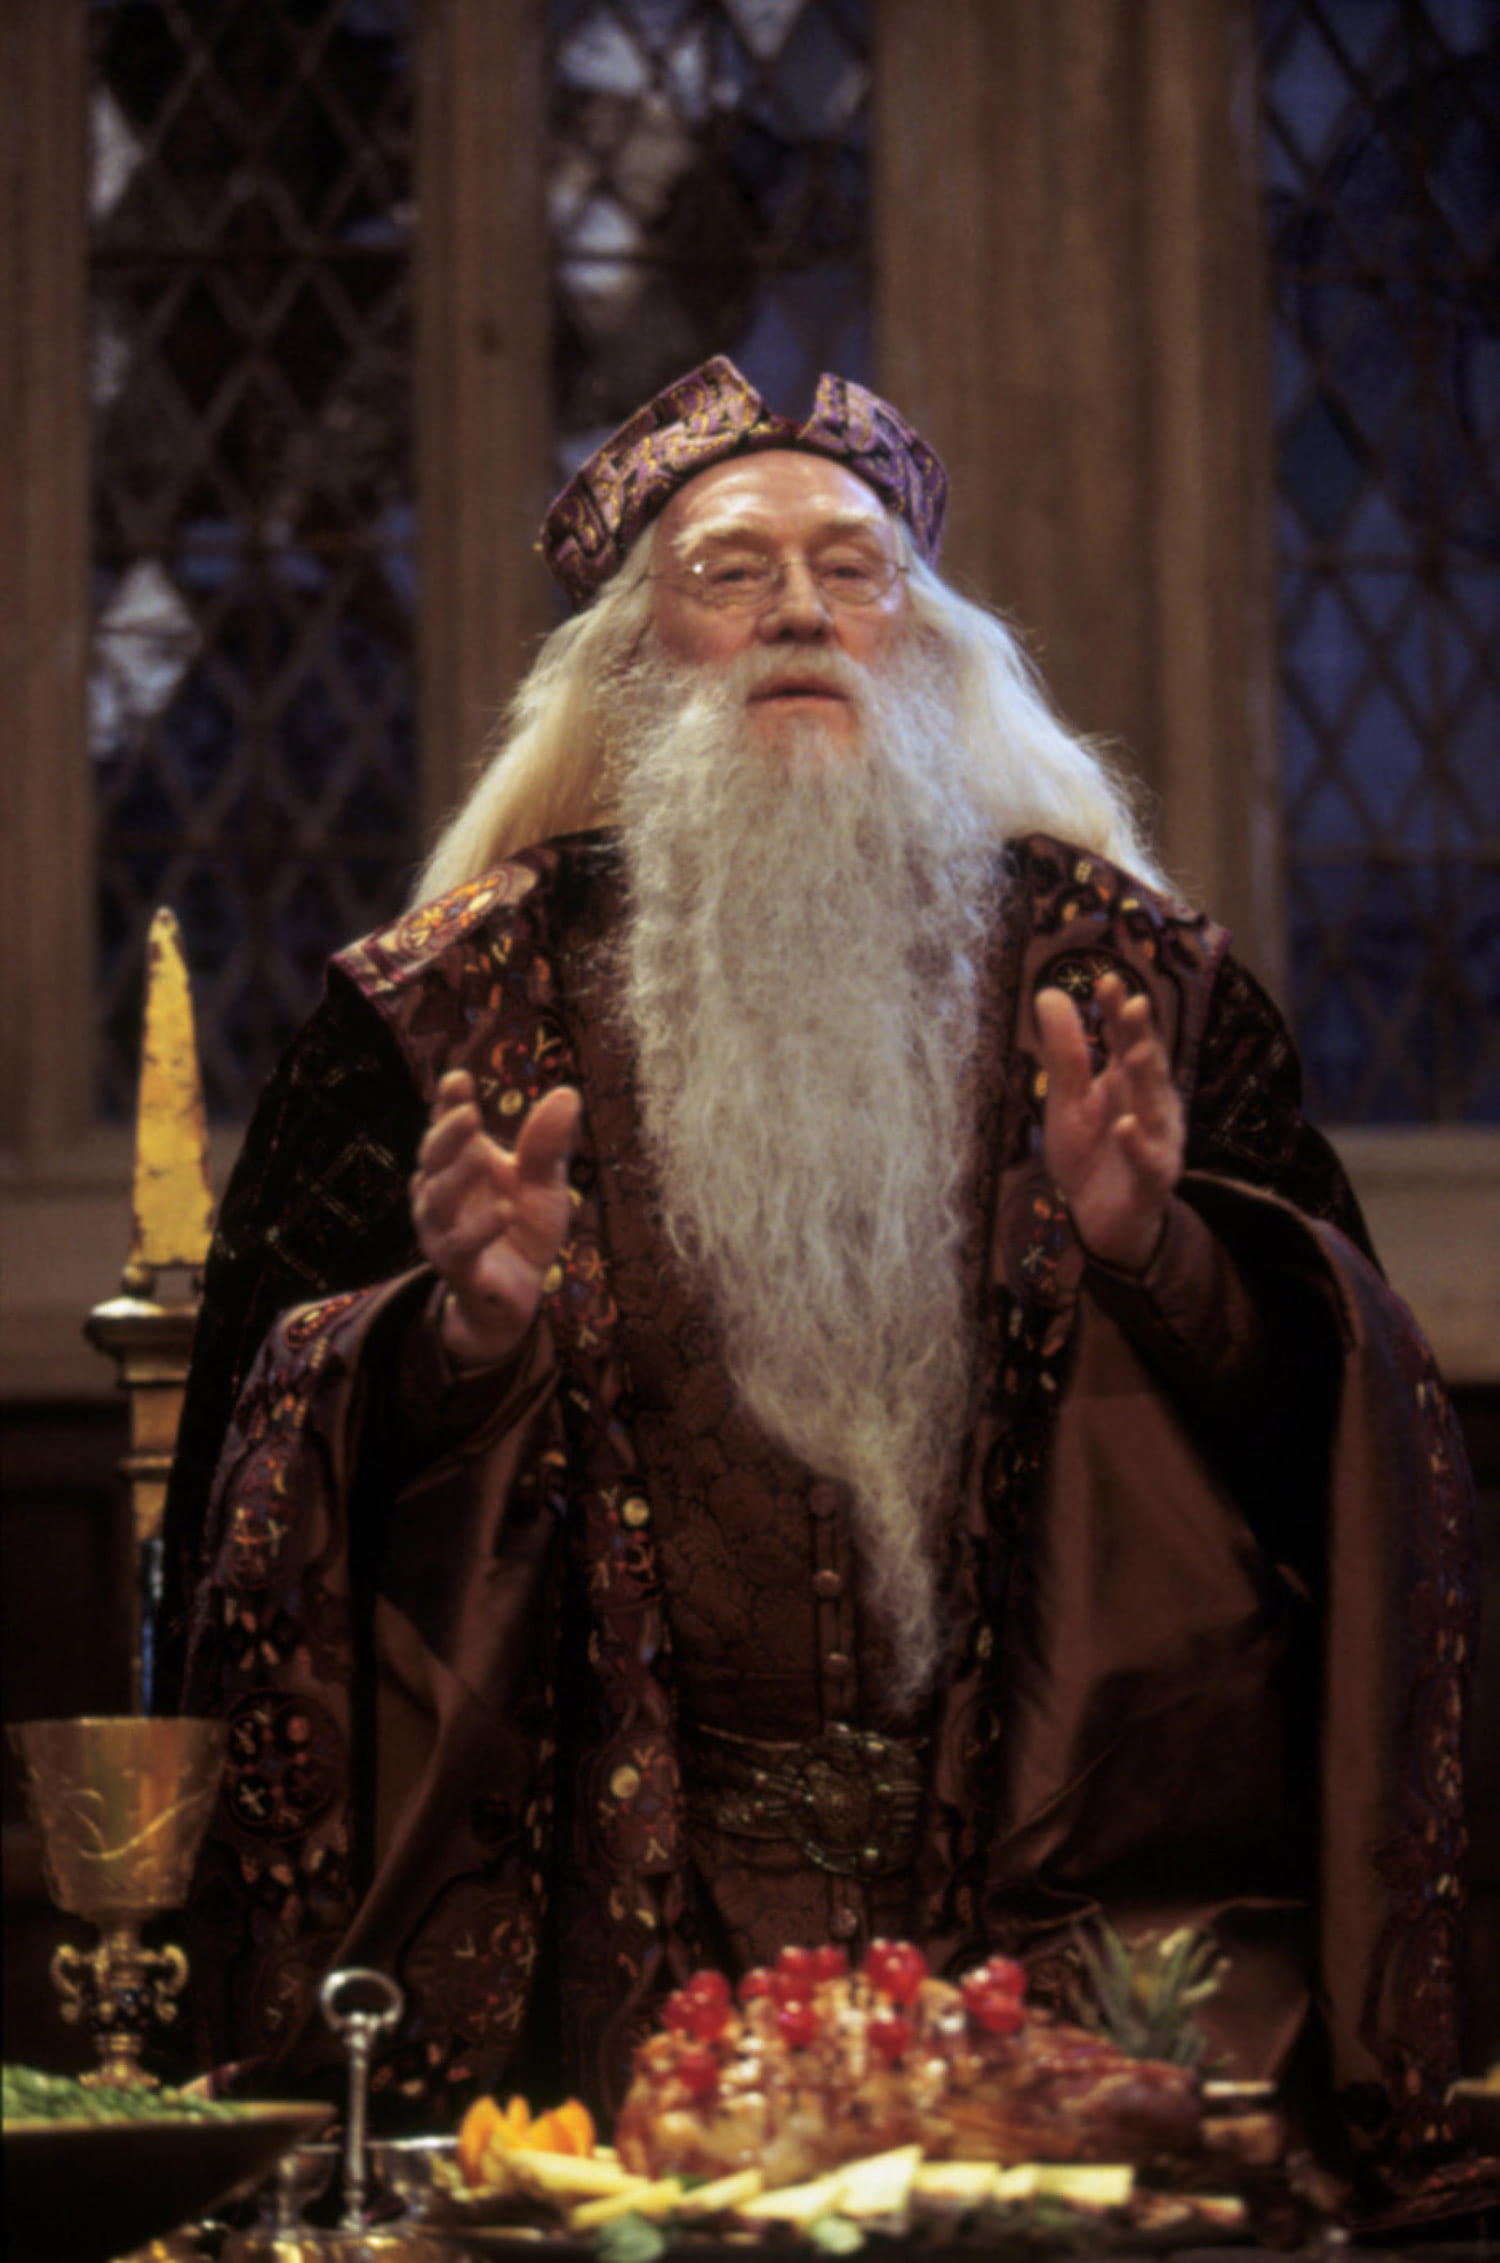 Dumbledore at the Great Hall feast